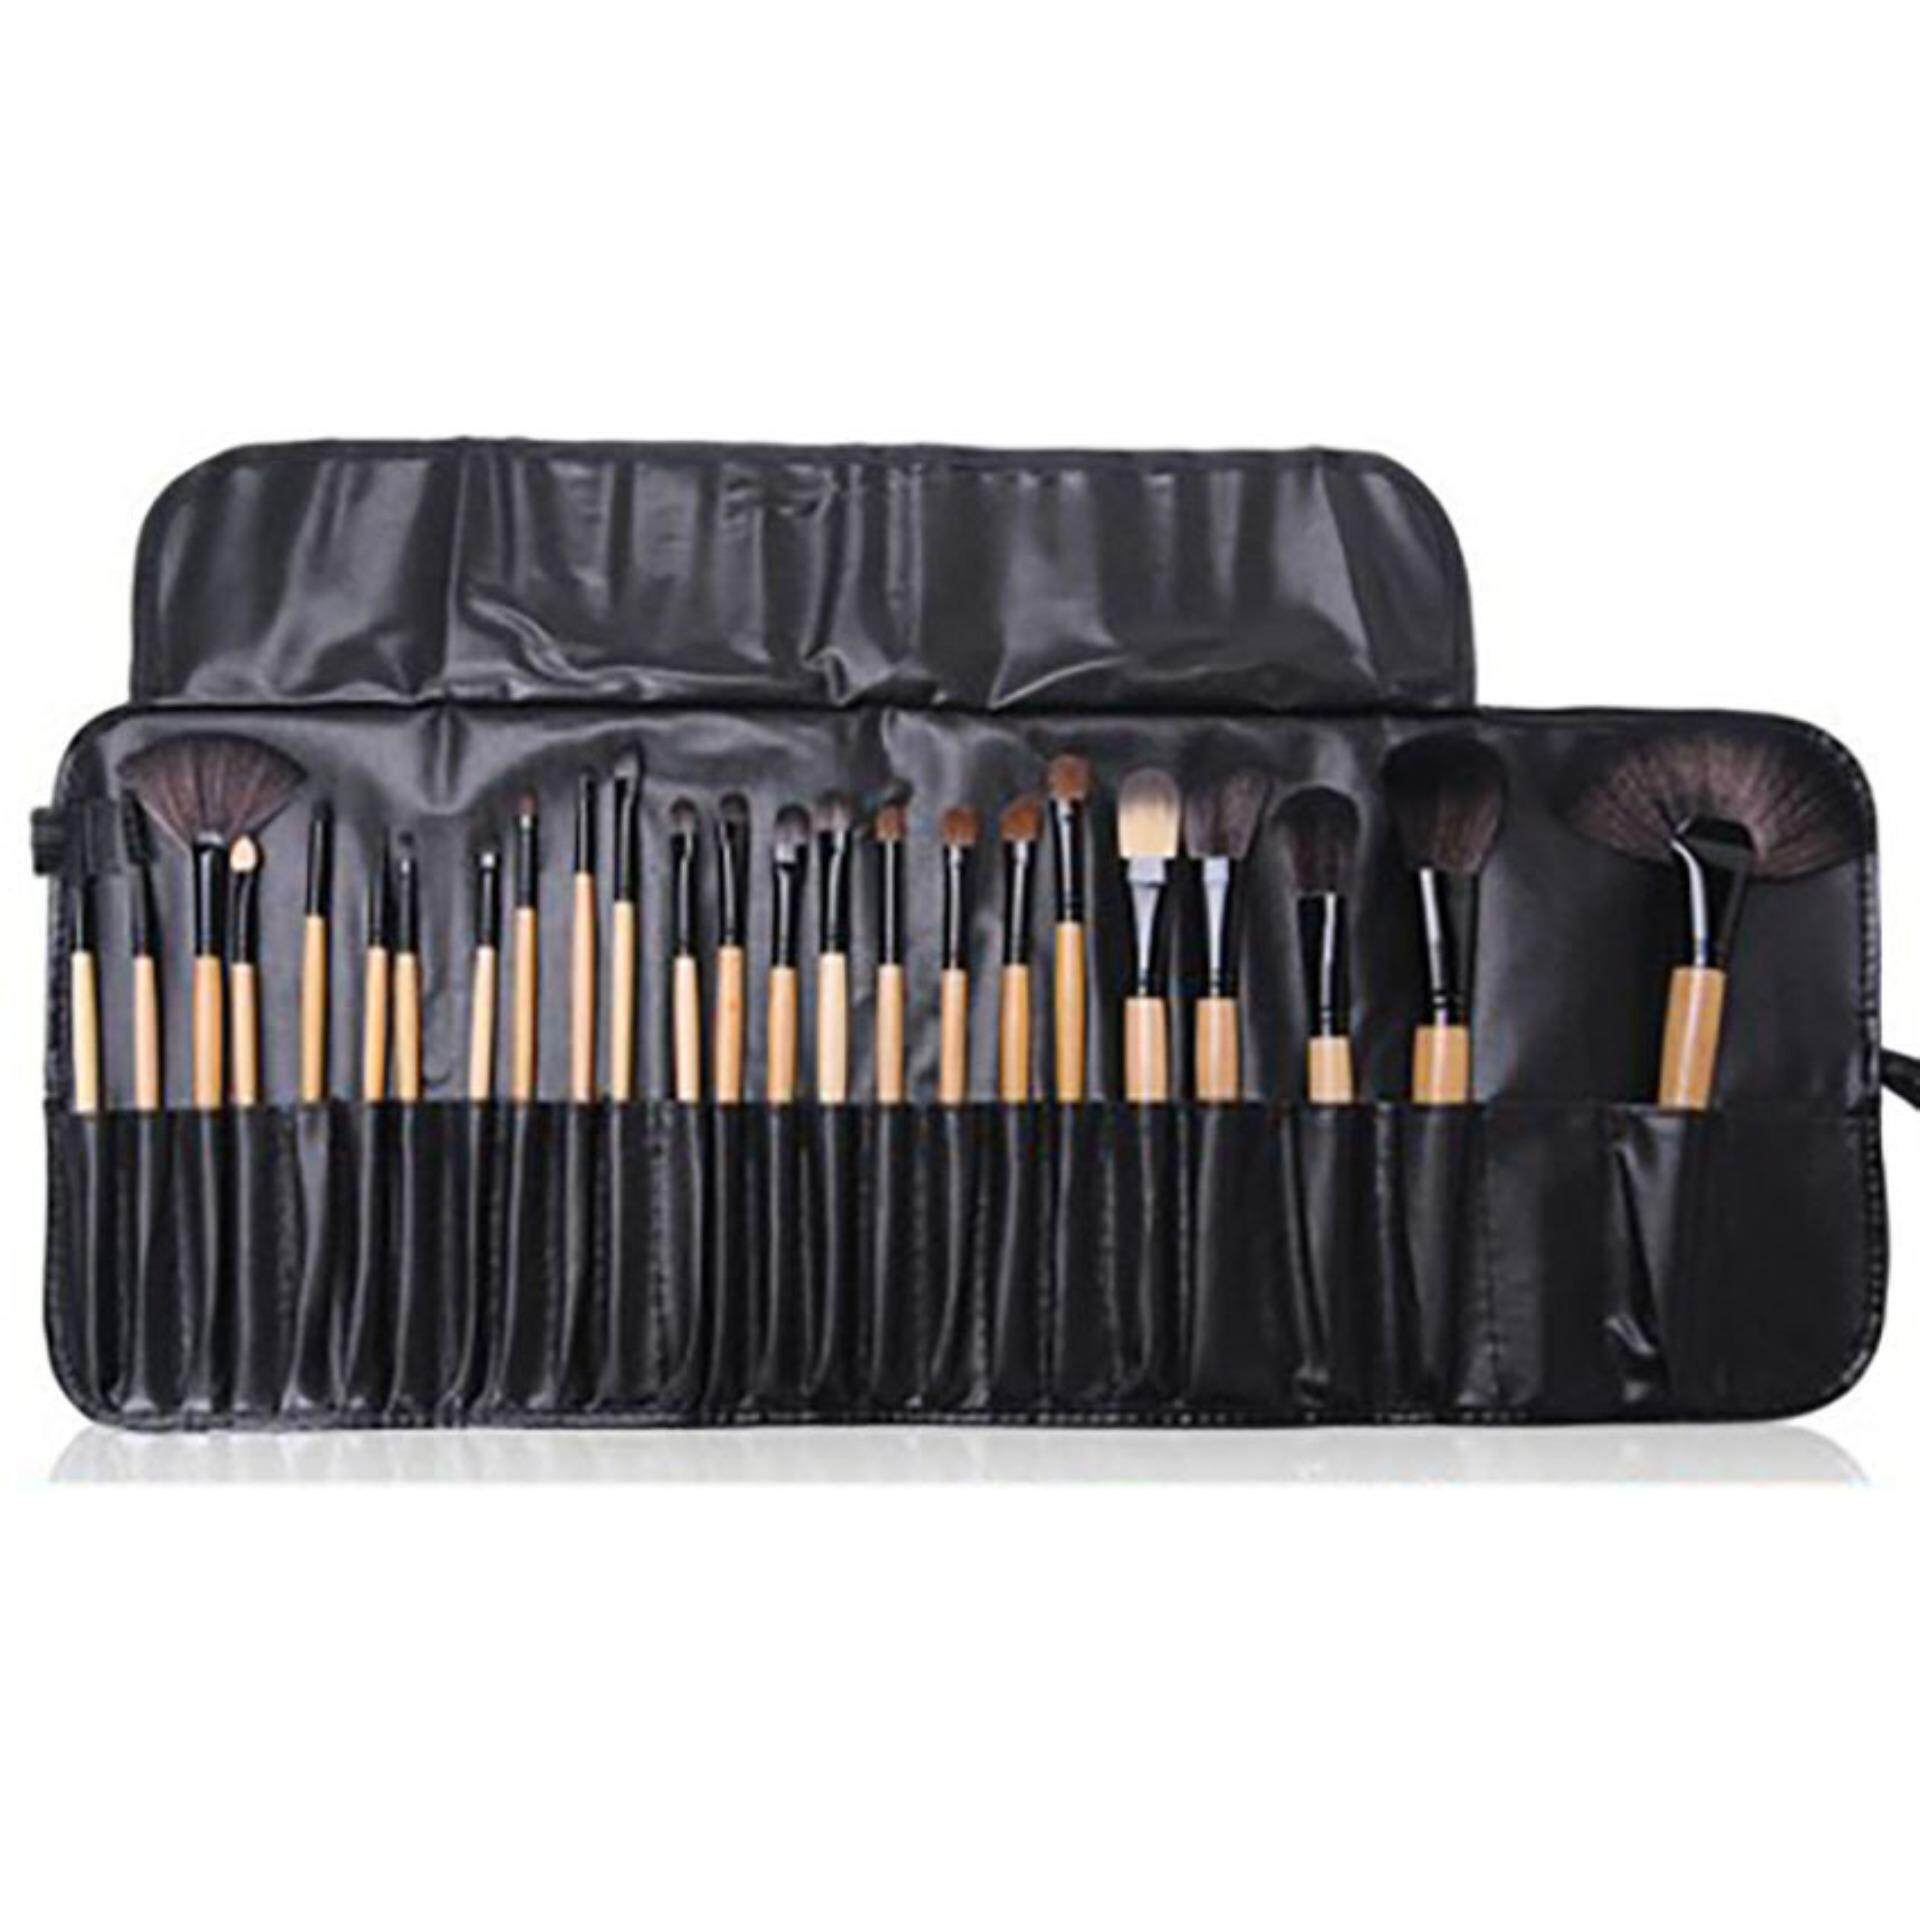 Unique2017 24 pcs Wood Color Makeup Brush Set Horse Hair Set With Brush Bag Eye Makeup